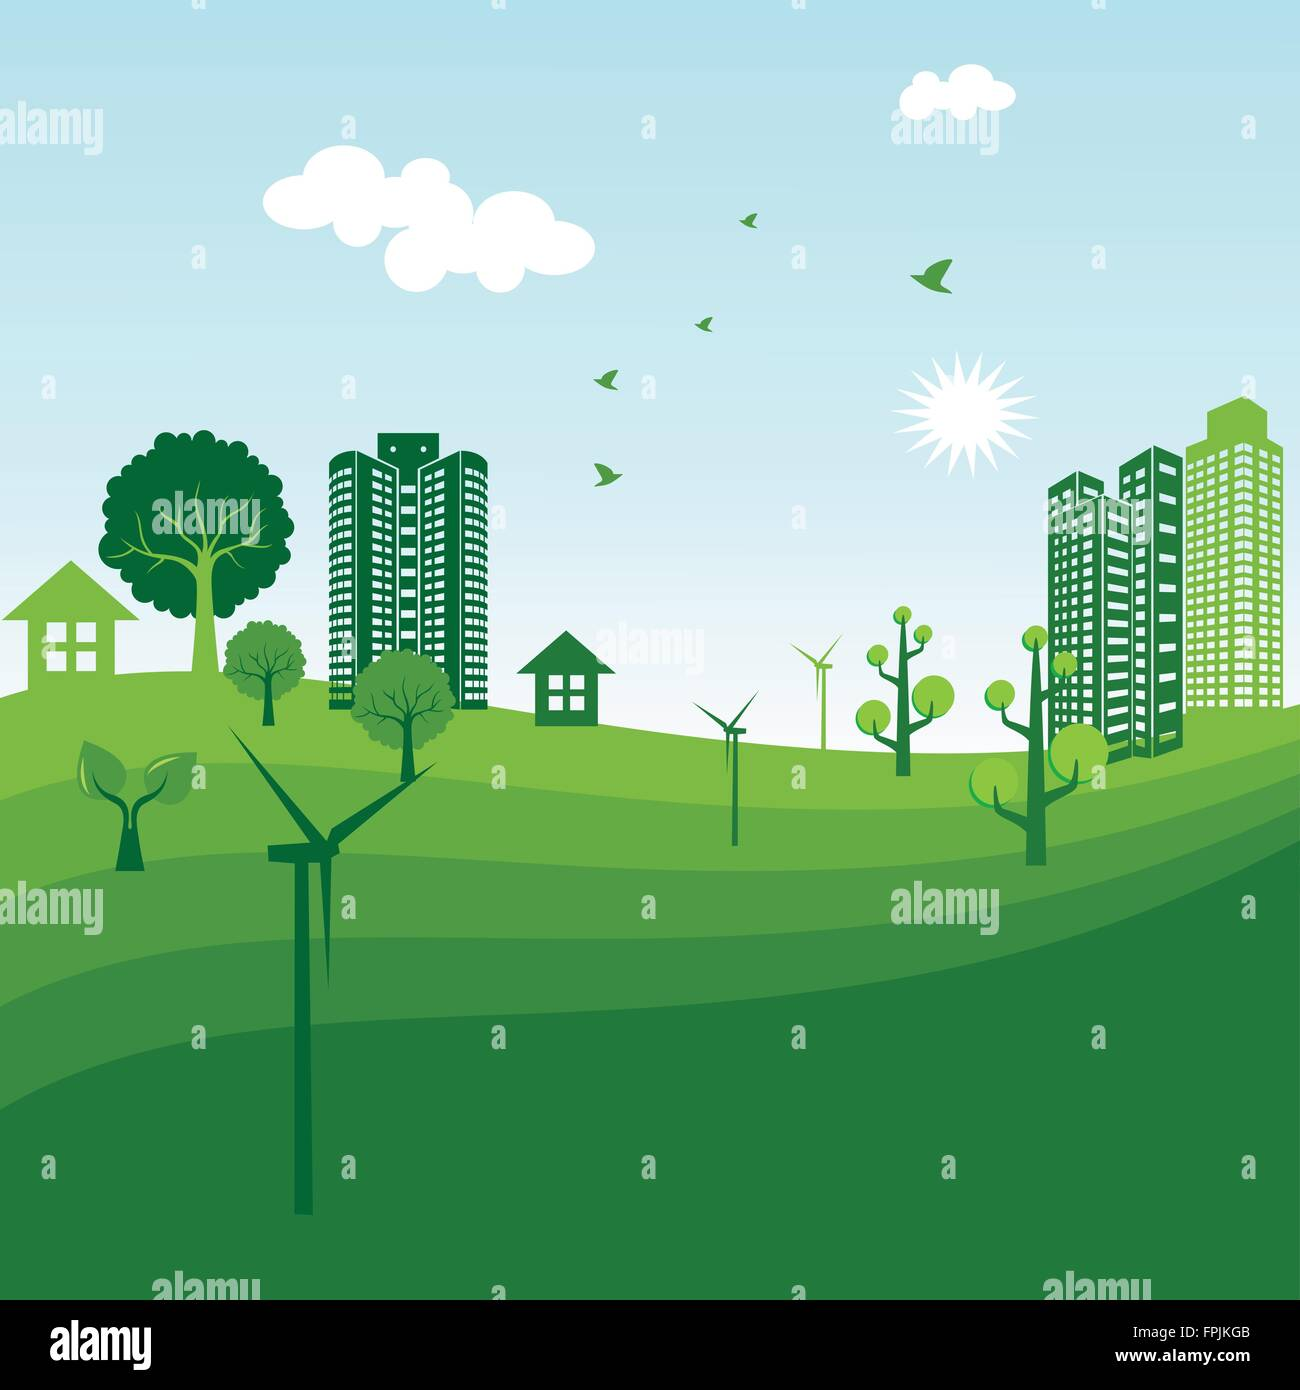 Green city ecology illustration - Stock Vector